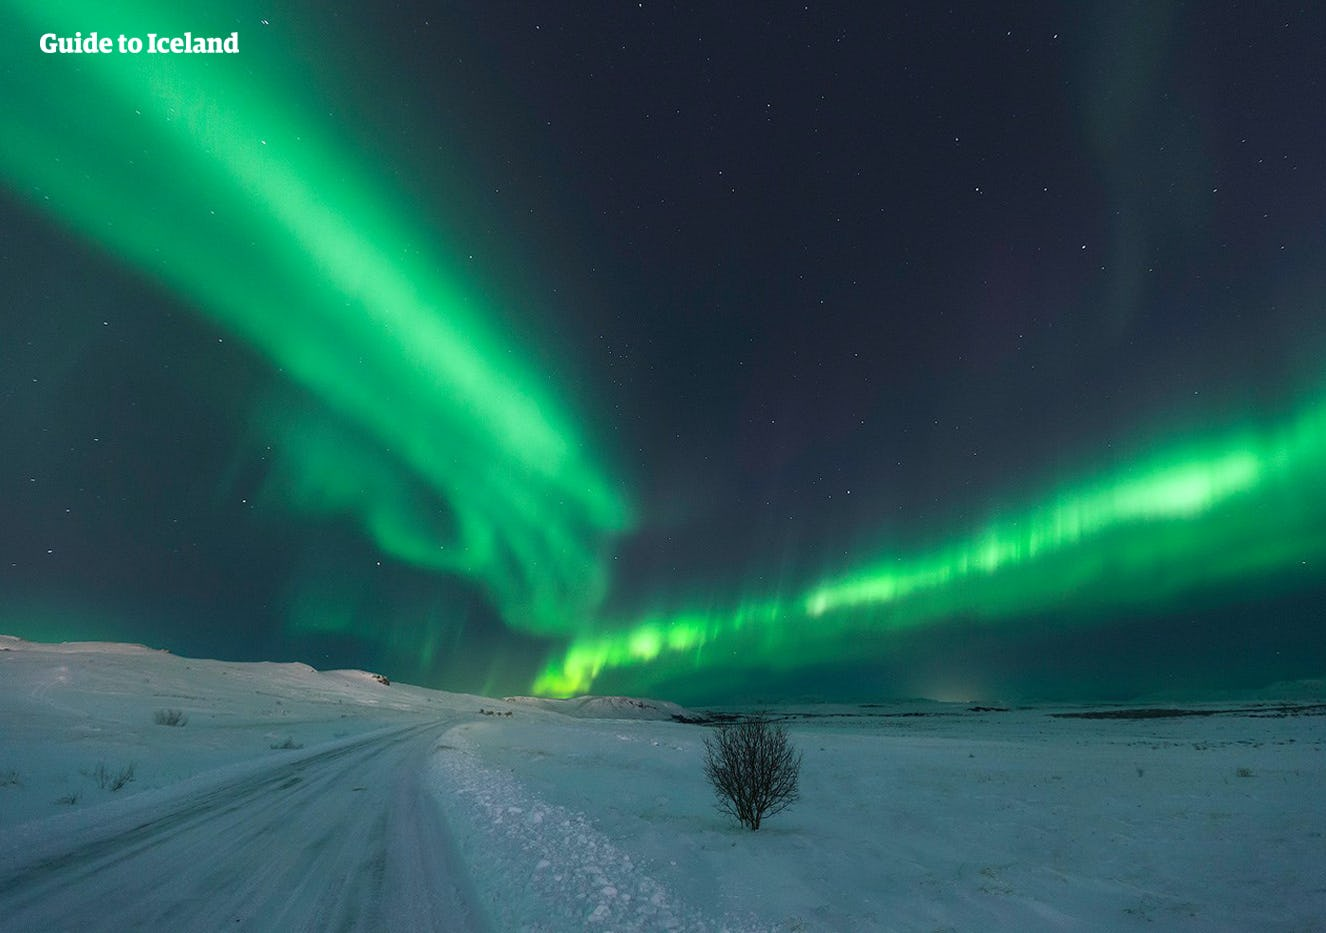 Self drive tours provide you with the freedom to hunt for the Northern Lights yourself.